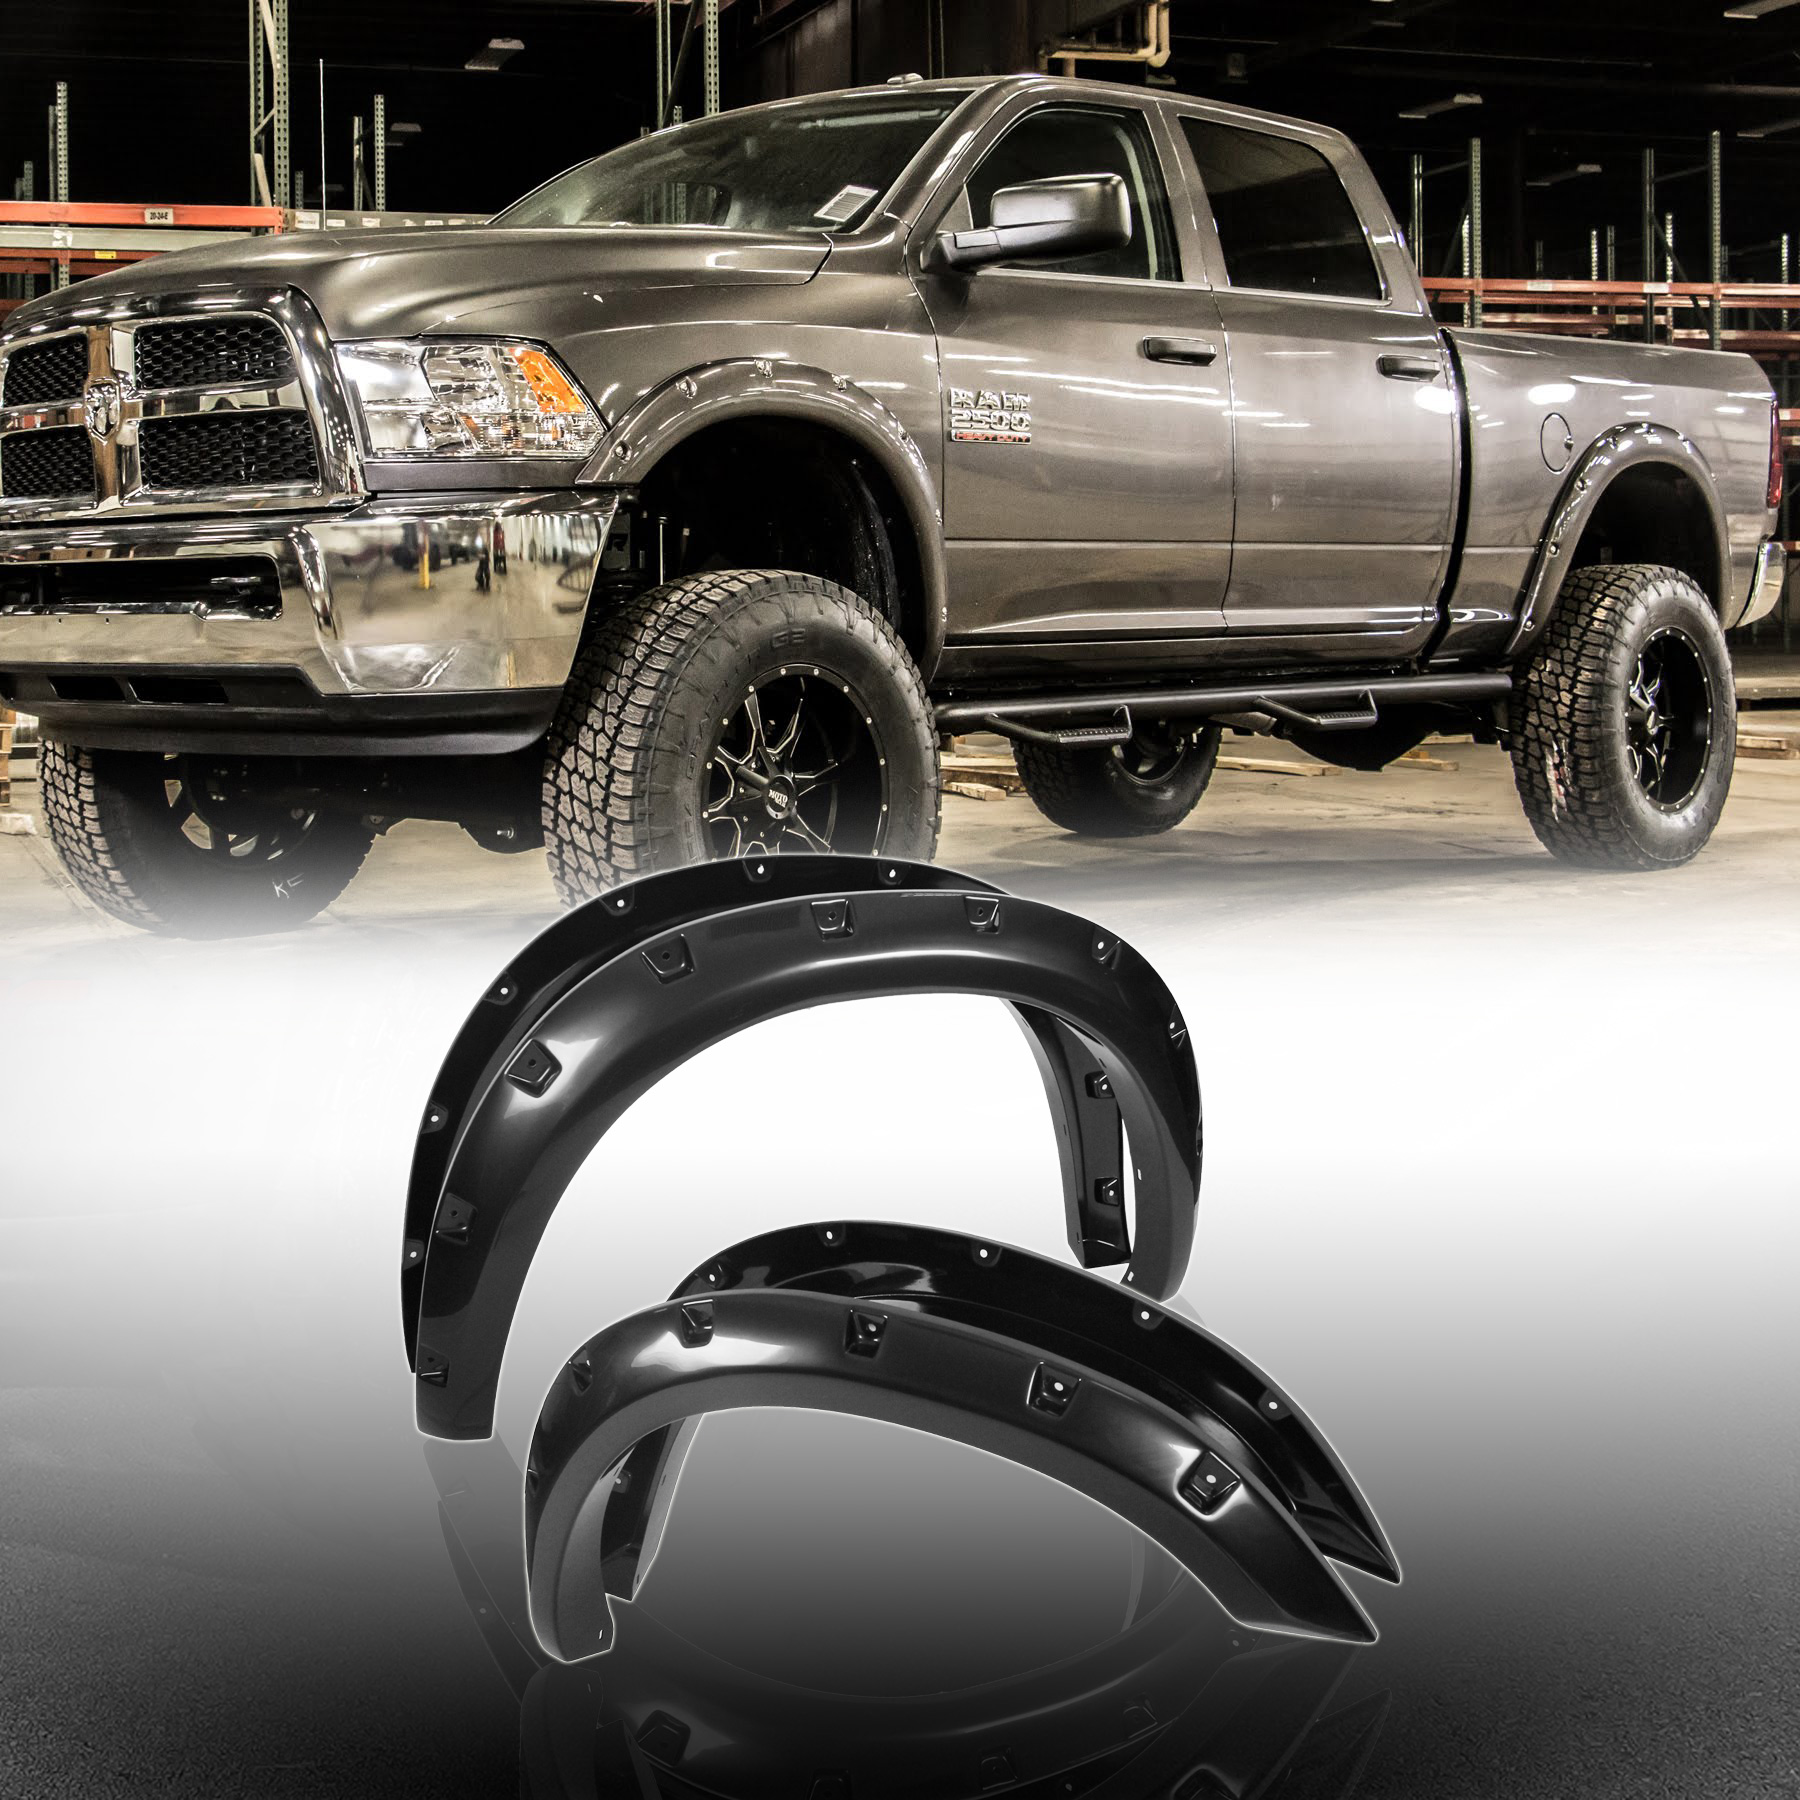 2010 Dodge Ram 2500 Regular Cab Exterior: 10-16 Front+Rear Dodge Ram 2500/3500 Smooth Blk ABS Pocket